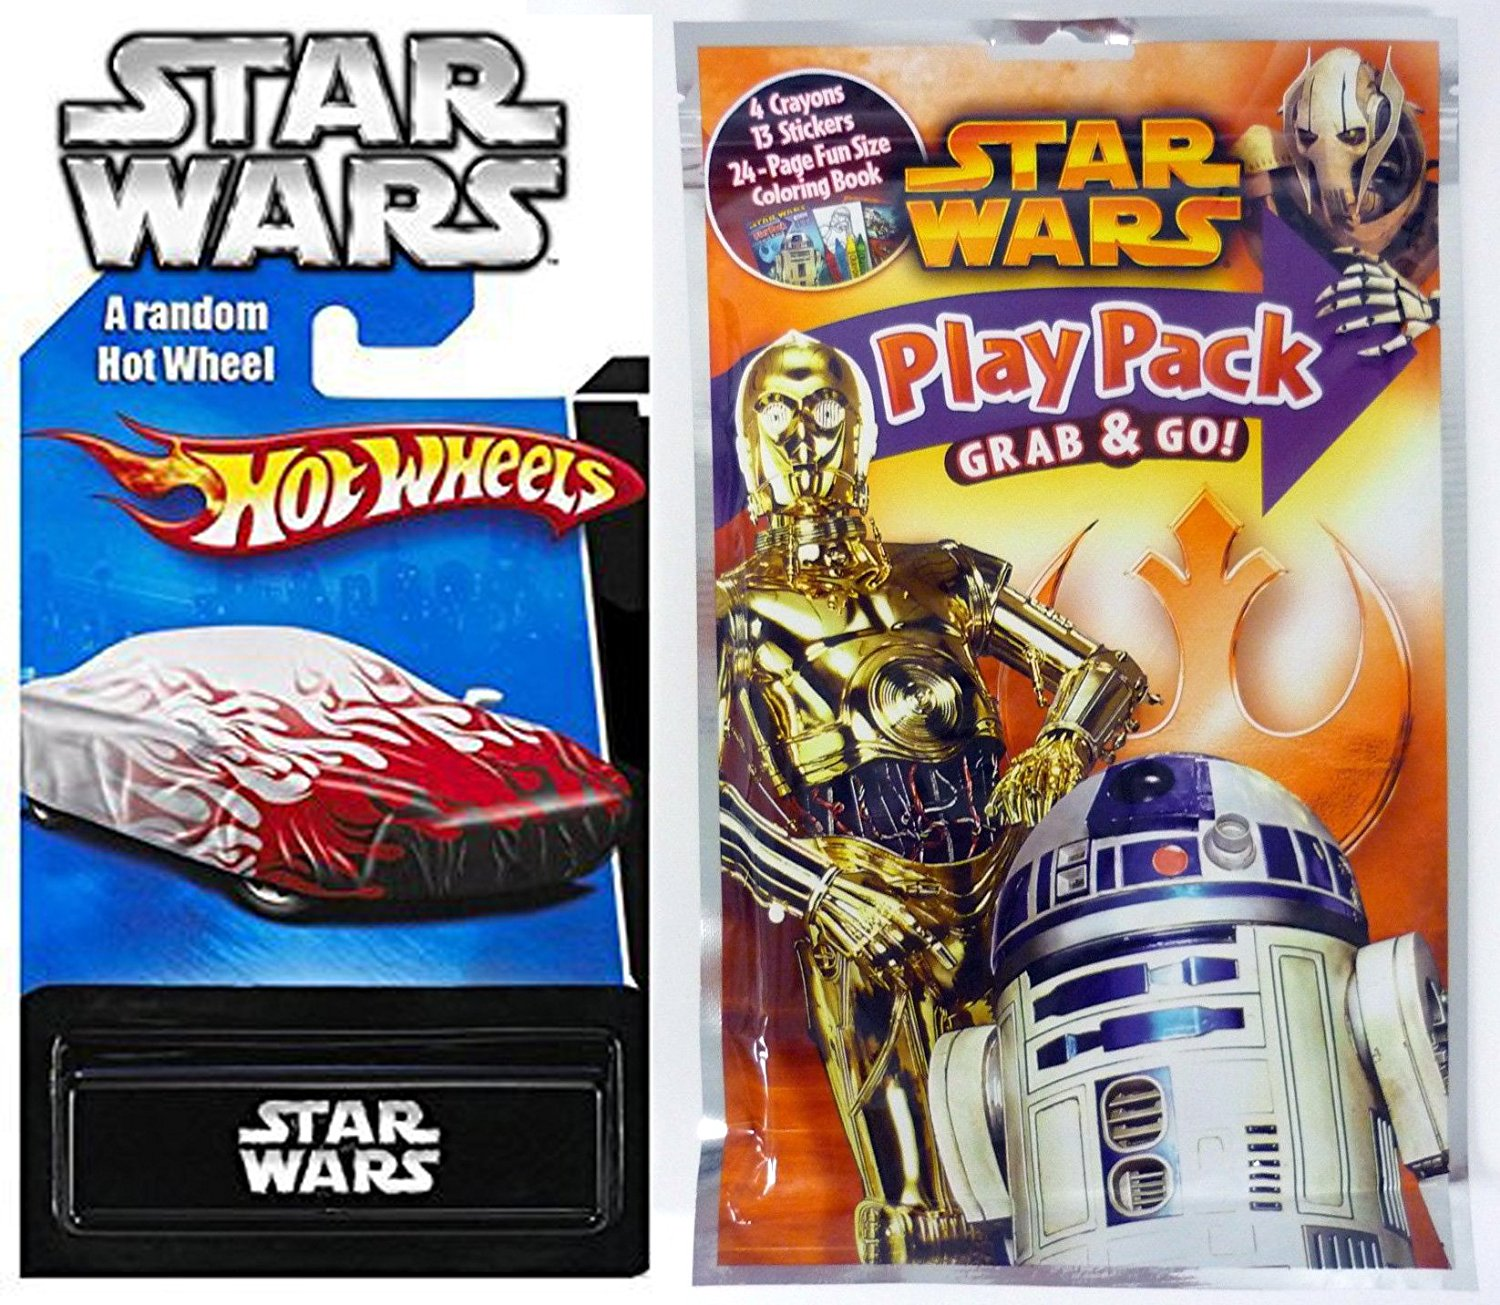 Star Wars R2D2 - C3P0 Play Pack Fun & Hot Wheels Exclusive Car - Coloring Book, Crayons, Stickers Party Hot Wheel Star Wars Car fun set